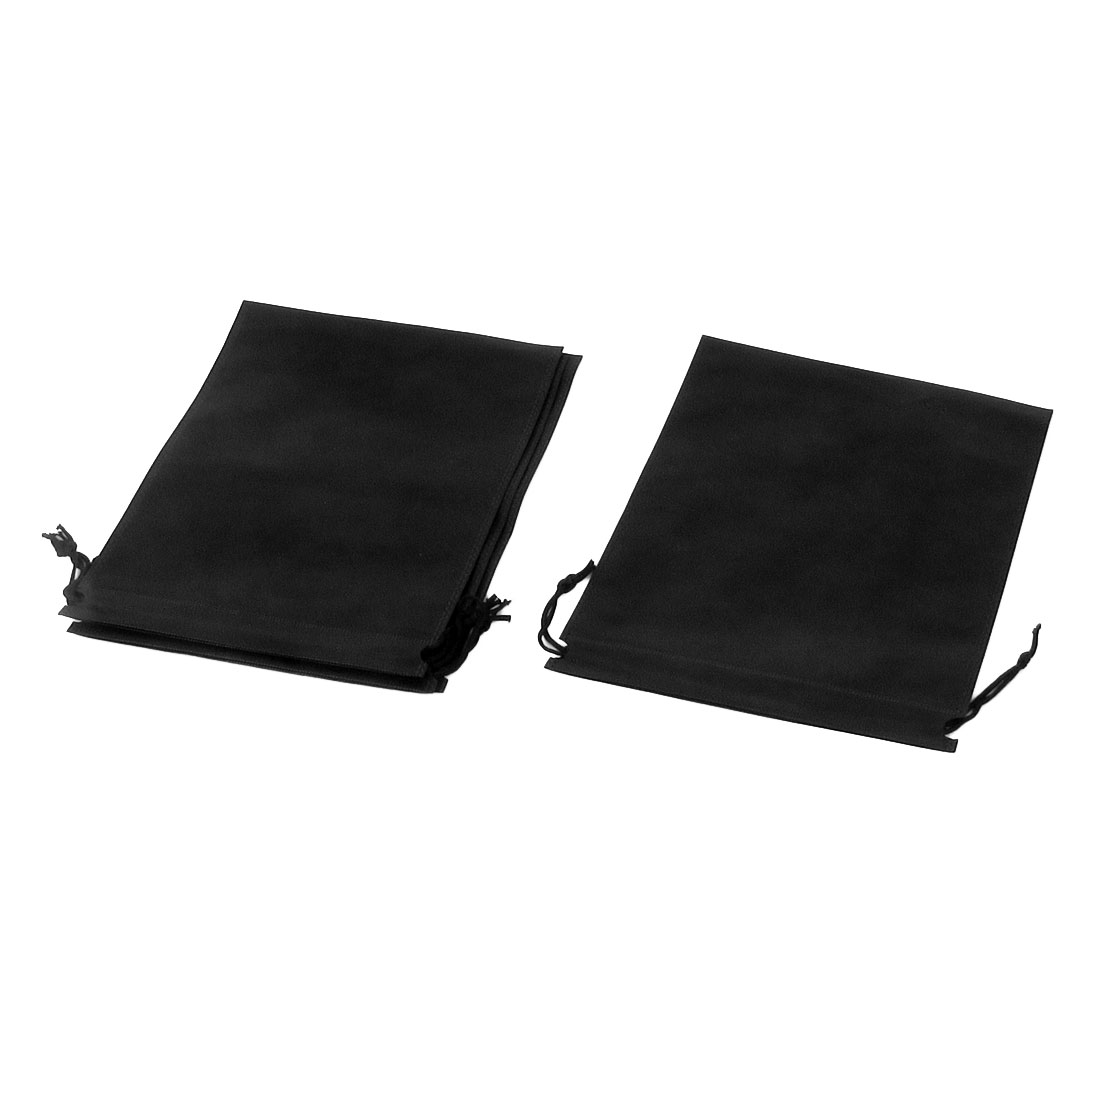 Traveling Clothes Dust Cover Storage Drawstring Bags 34 x 25cm Black 4pcs